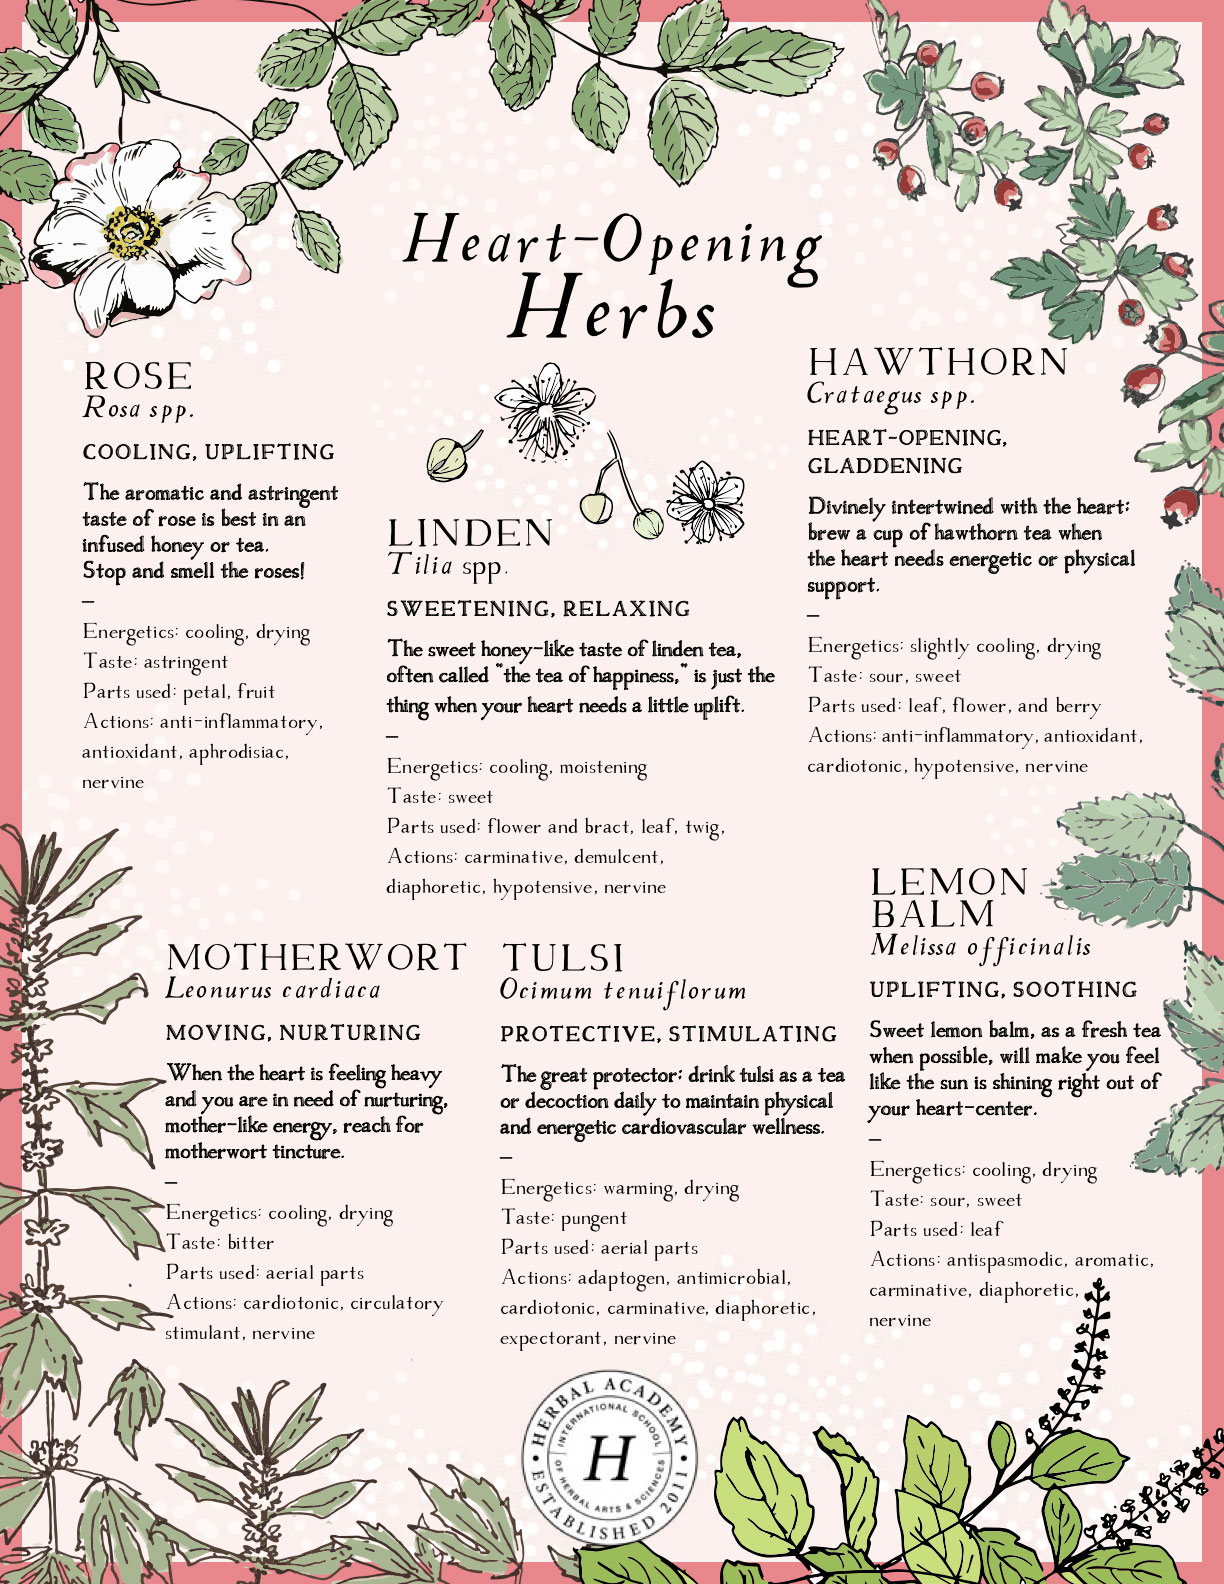 A Heart-Warming Herbalist Day | Herbal Academy | April 17th marks Herbalist Day — a celebration of the many teachers, peers, and herbs that guide an herbalist through their journey.